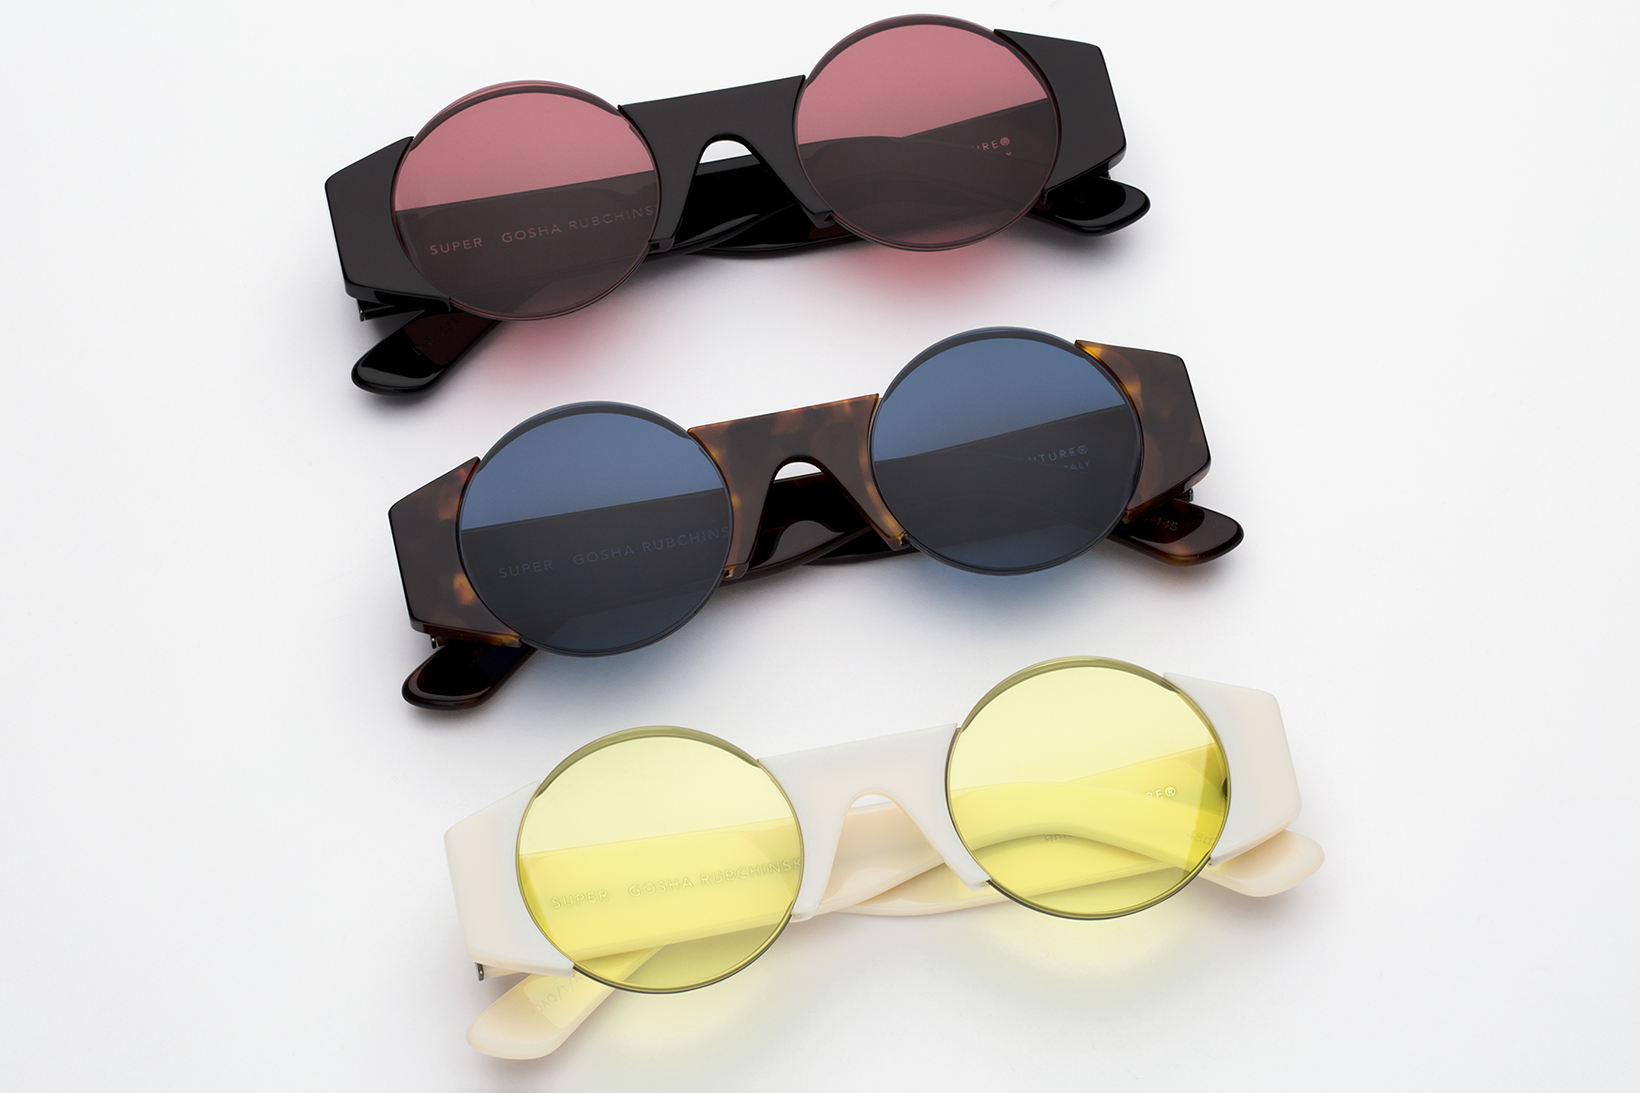 Gosha Rubchinksiy x SUPER by RETROSUPERFUTURE Eyewear Collection - 1844729